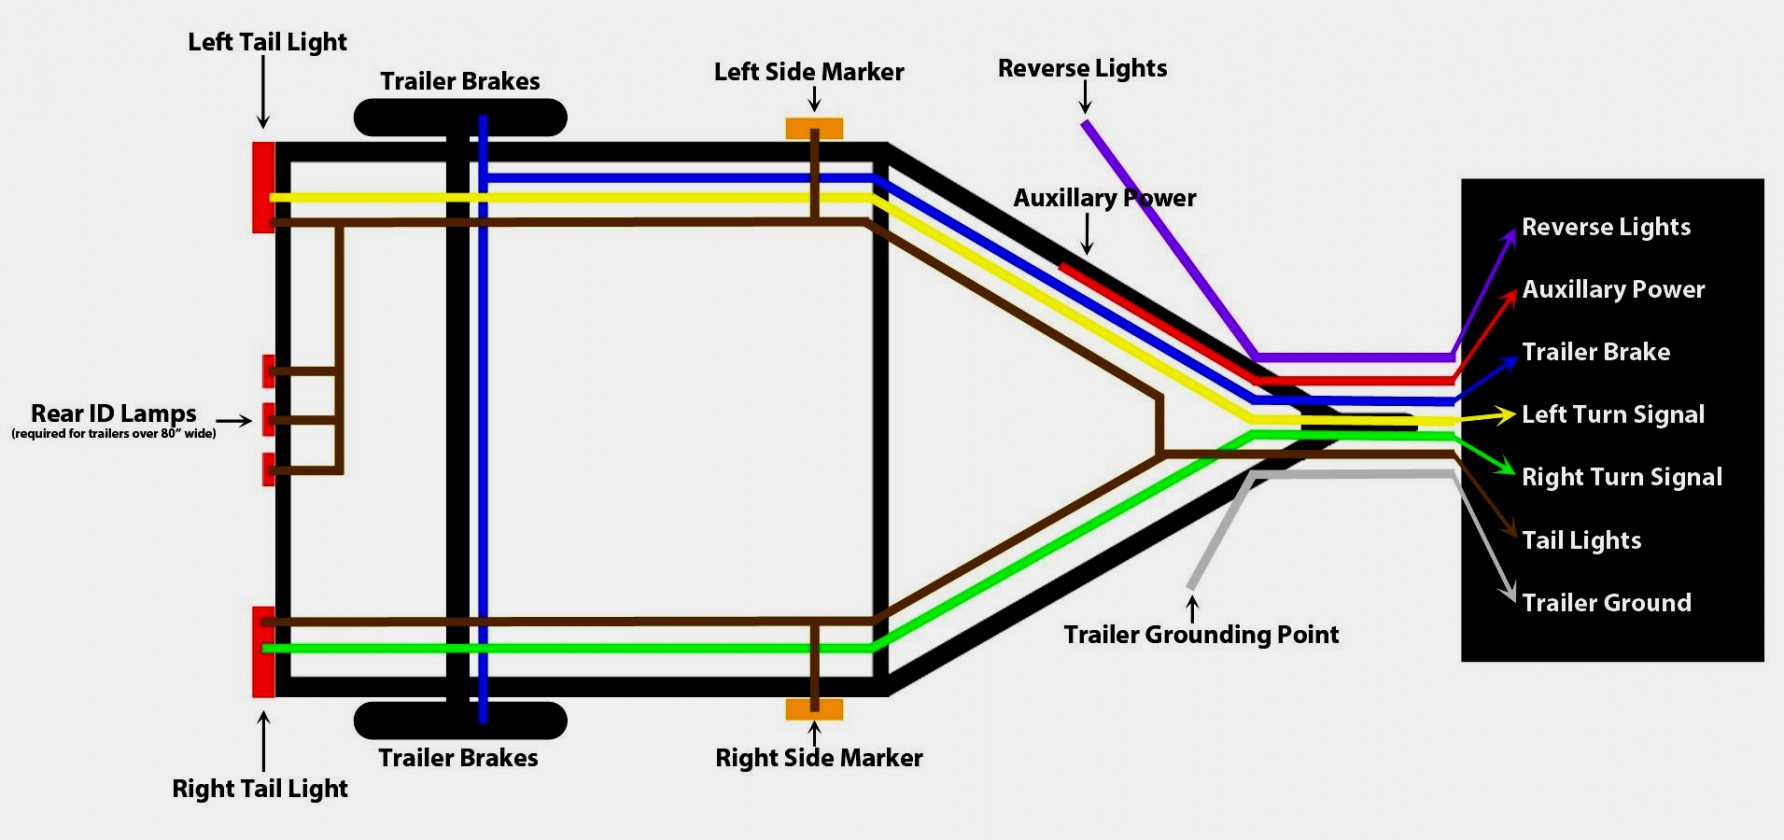 Wiring Diagram For Trailer Lights South Africa - Simple Wiring Diagram - Trailer Wiring Diagram South Africa